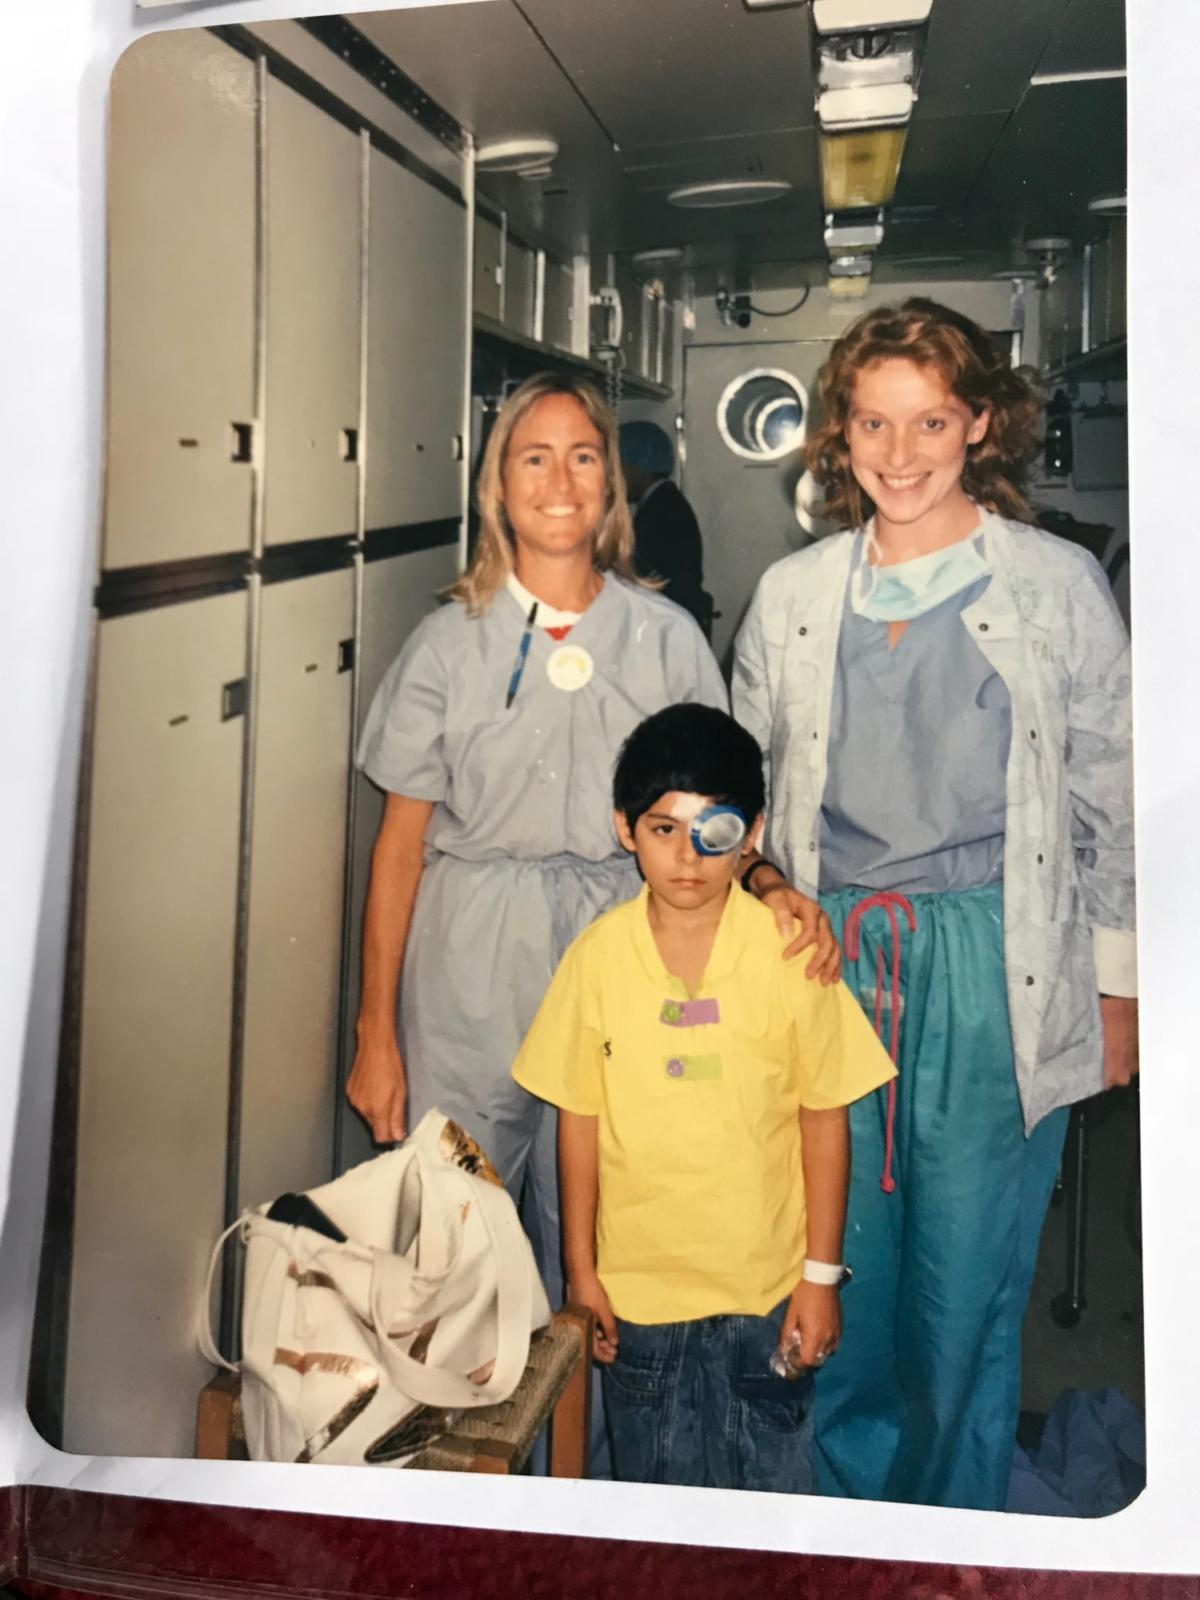 Orbis nurses with young patient.